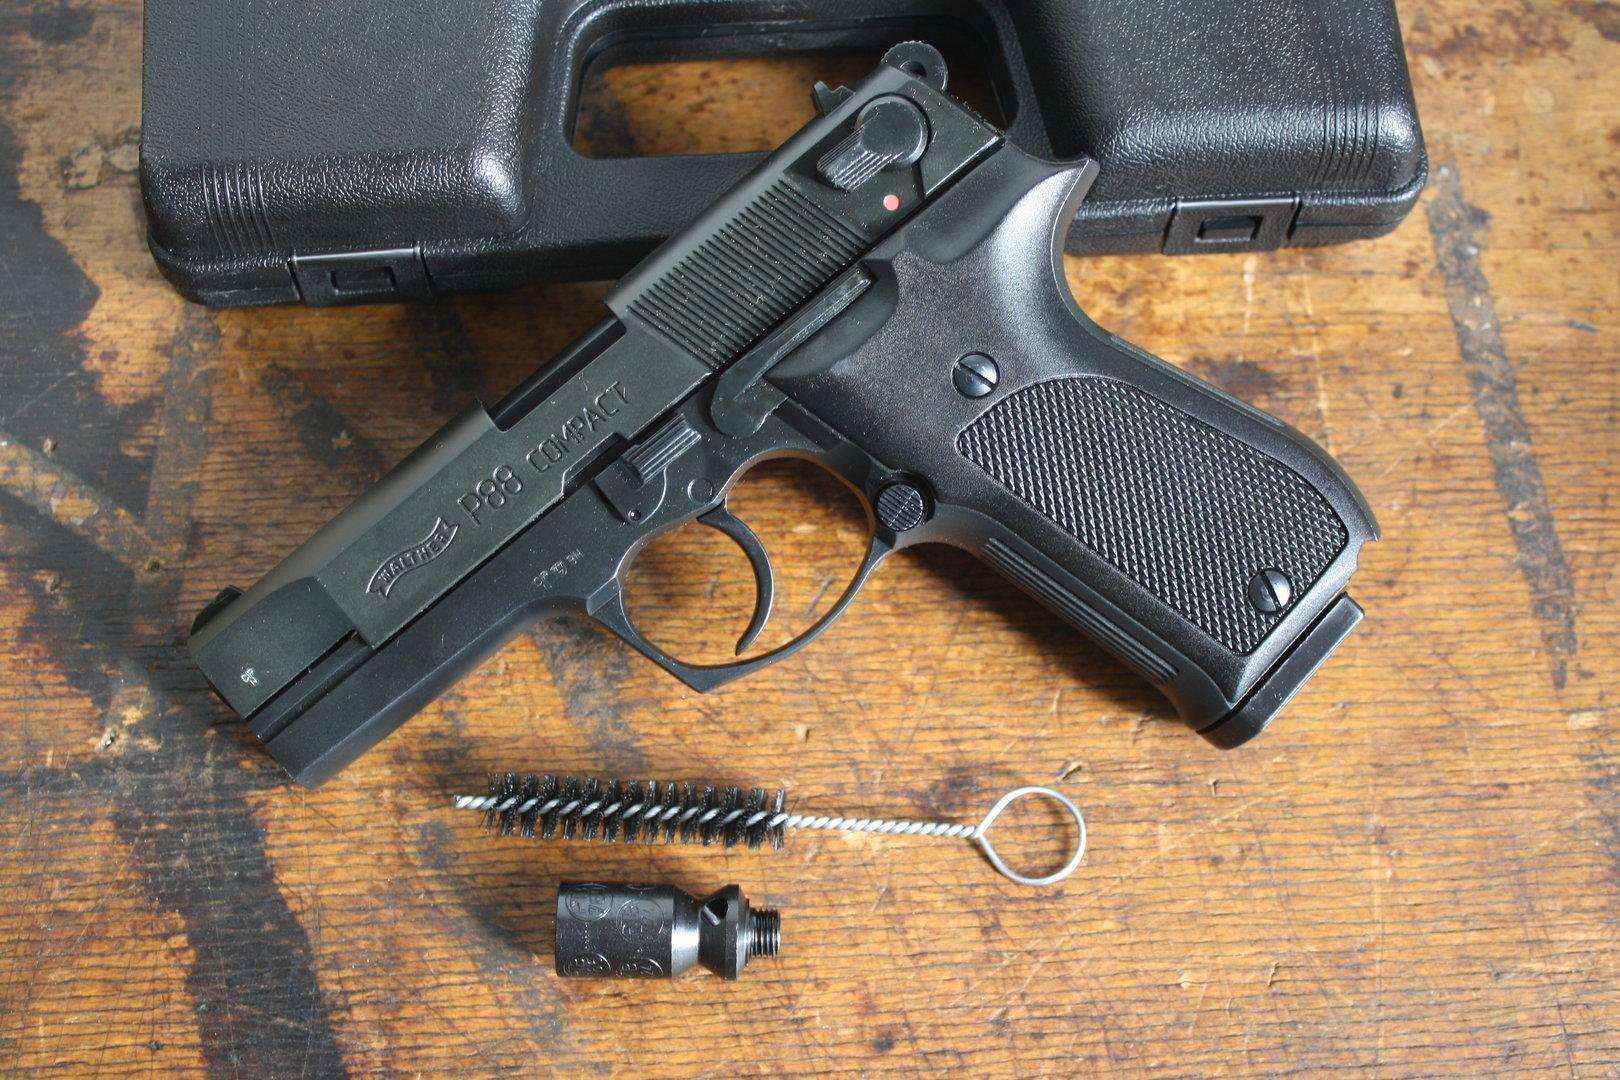 Walther P88 was introduced in 1988 in 9 mm Parabellum chambering